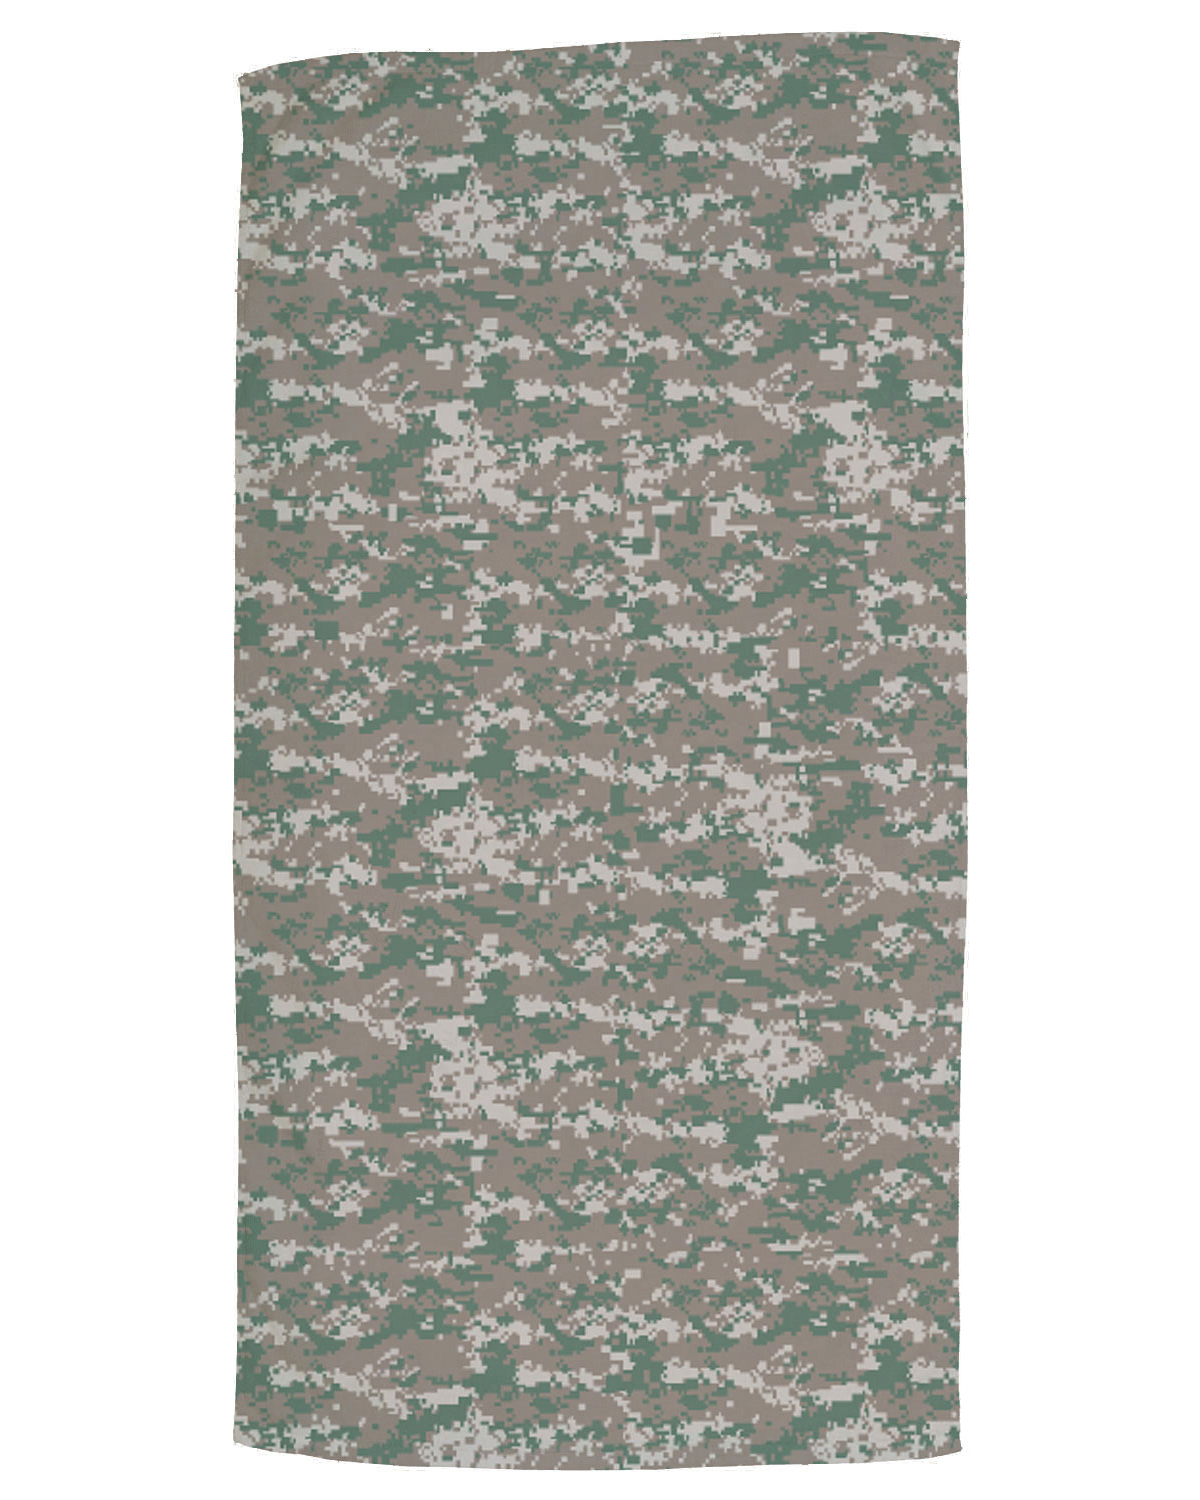 Pro Towels CAMOD10 - Camo Beach Towel